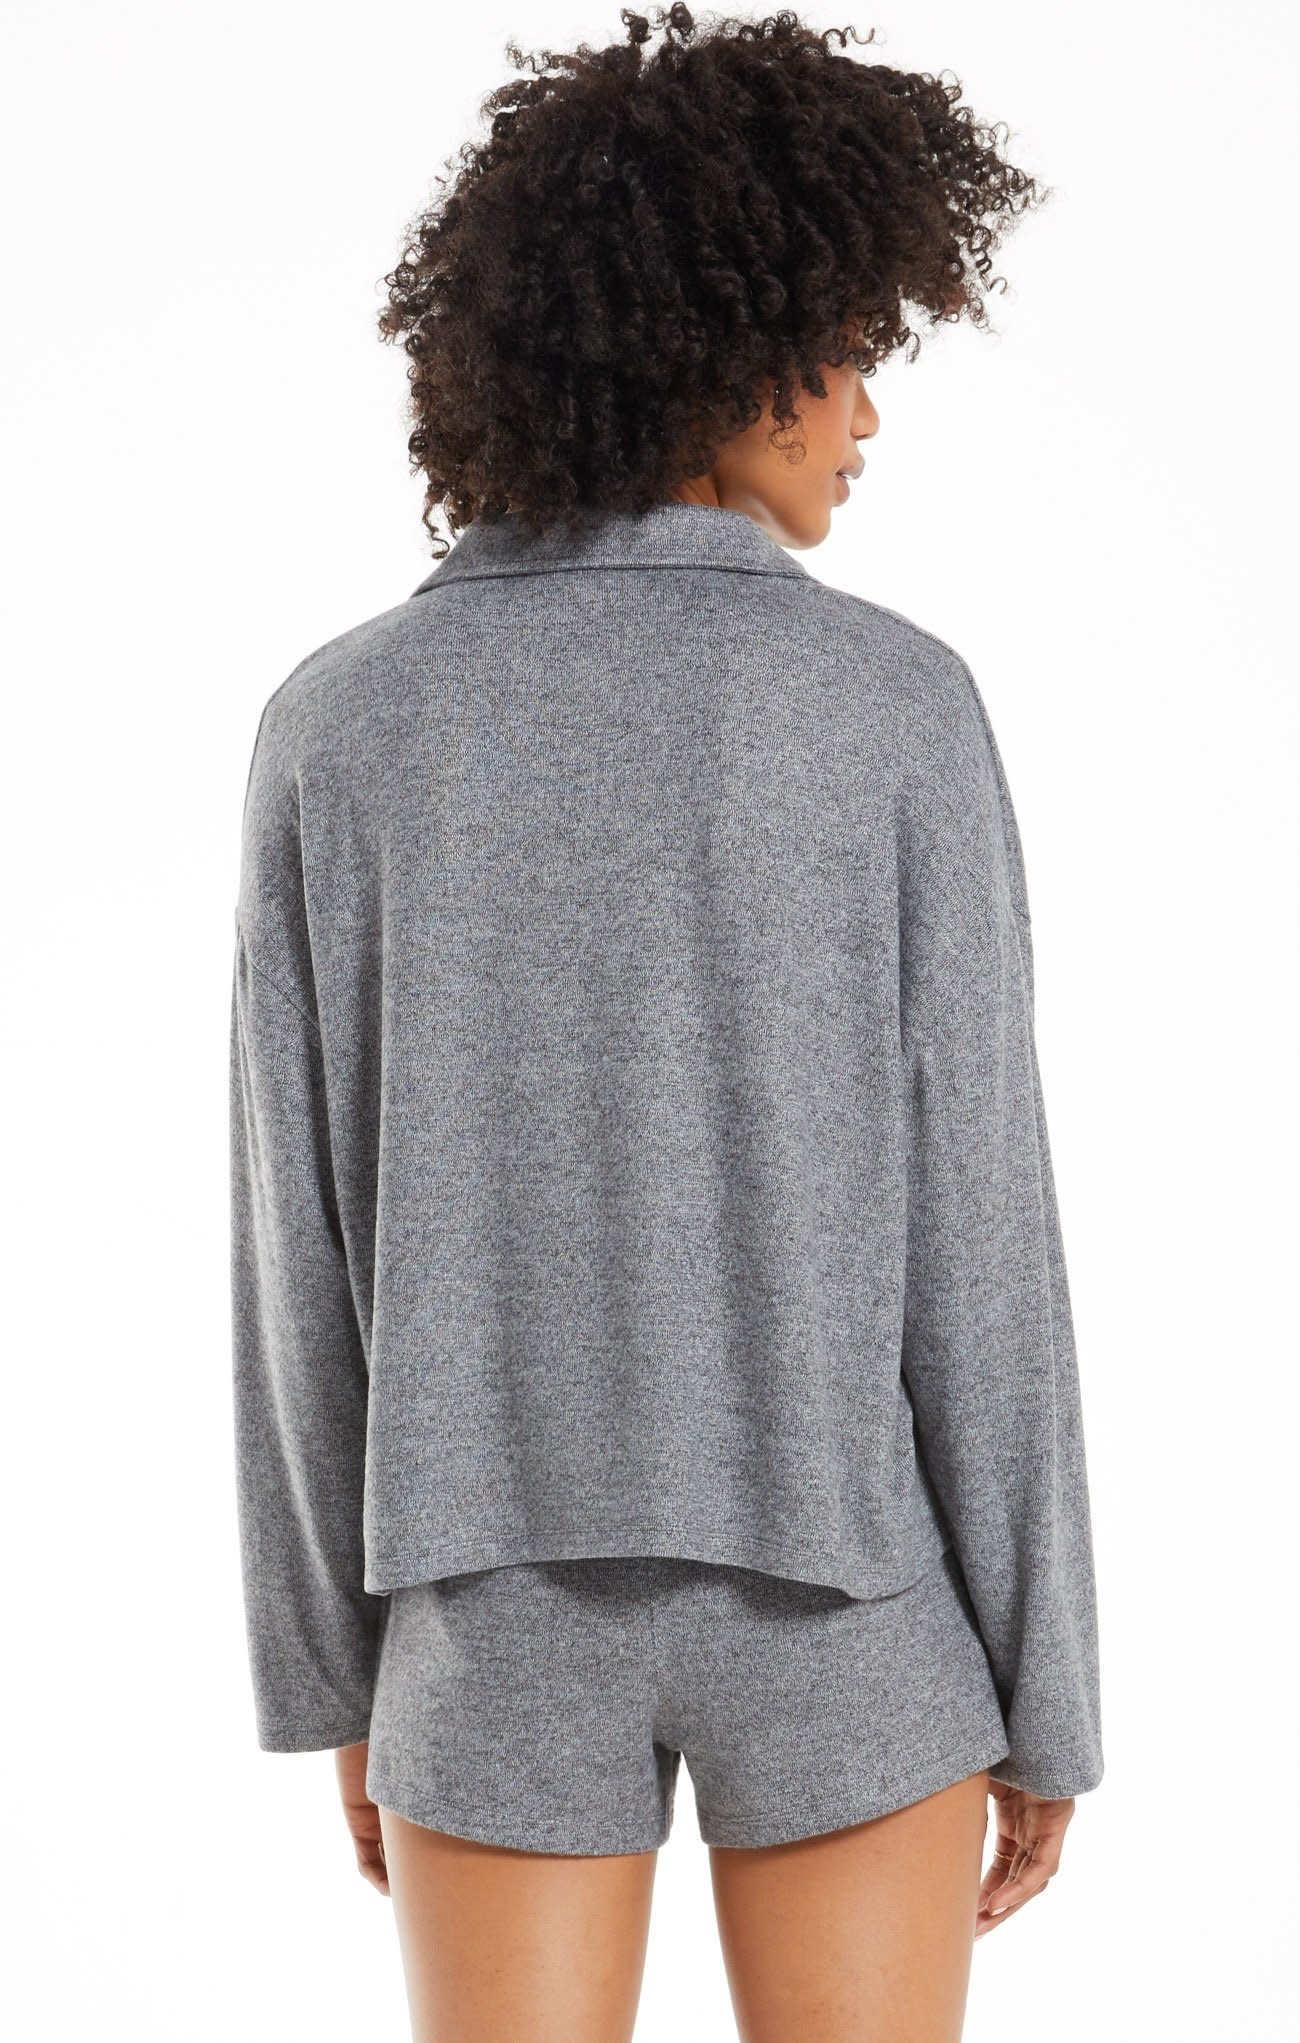 ZSUPPLY GAME ON SILKY LONG SLEEVE TOP - HEATHER BLACK